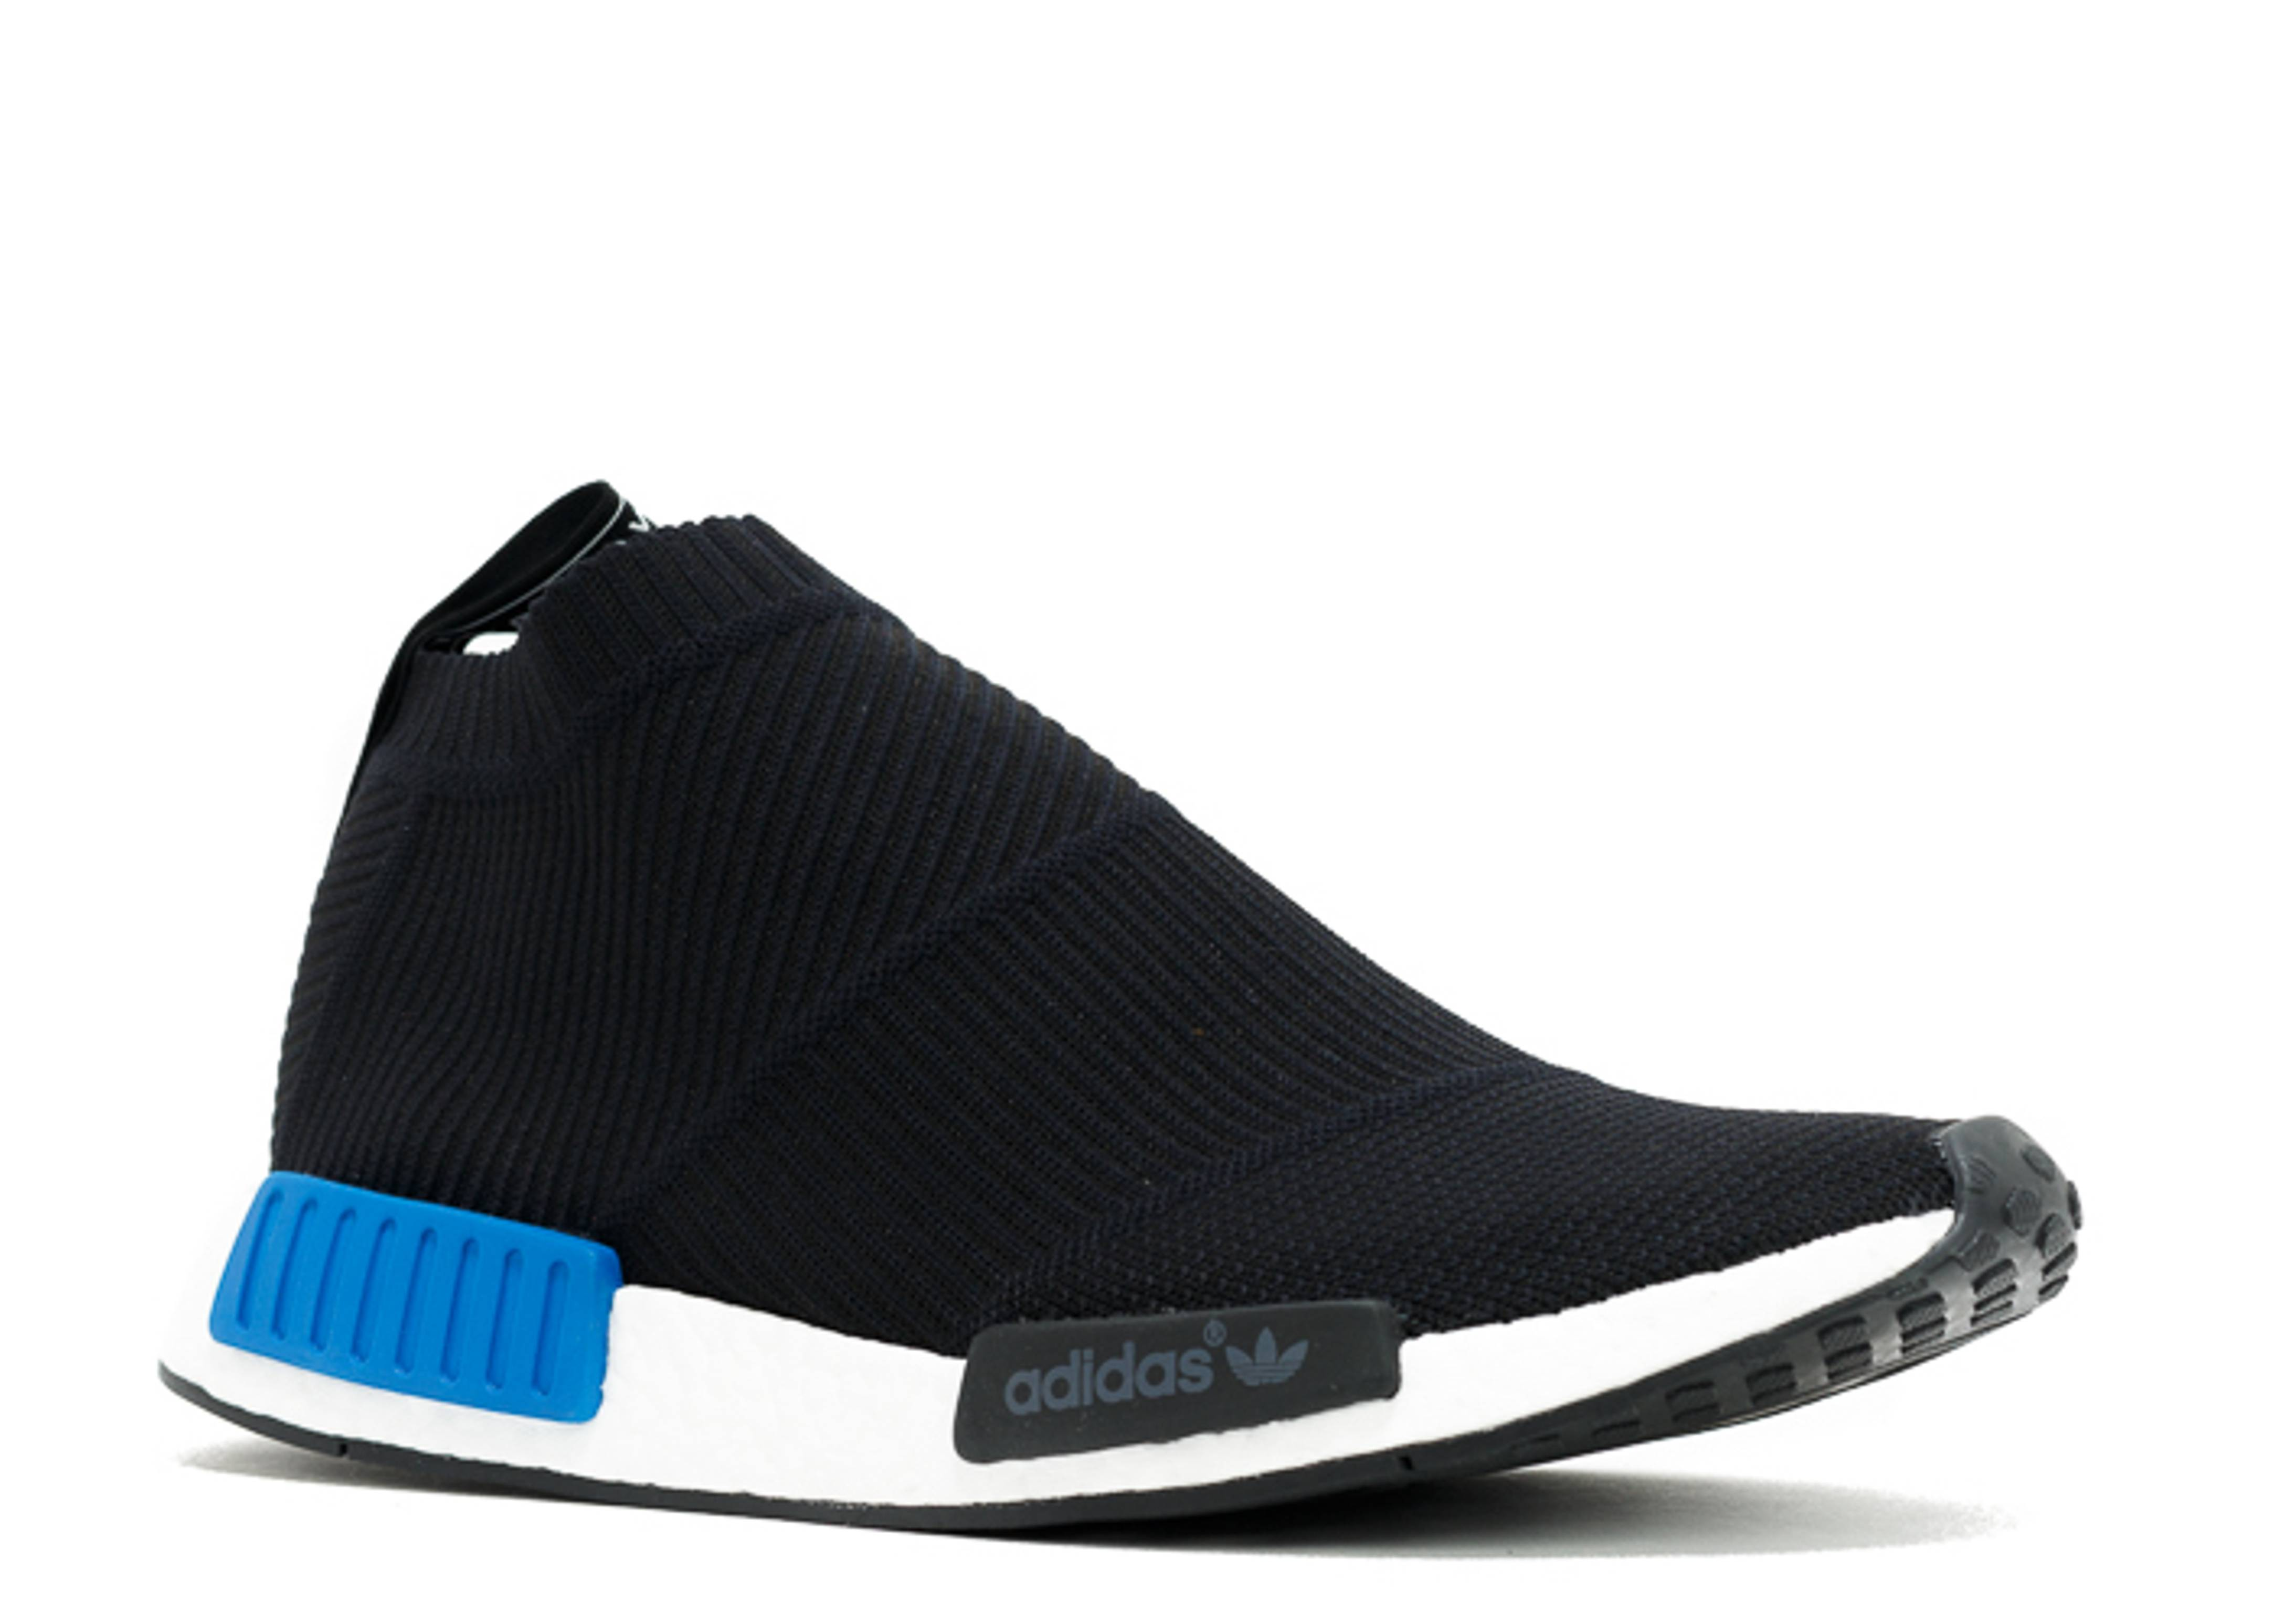 nmd cs1 pk city sock adidas s79152 black blue. Black Bedroom Furniture Sets. Home Design Ideas